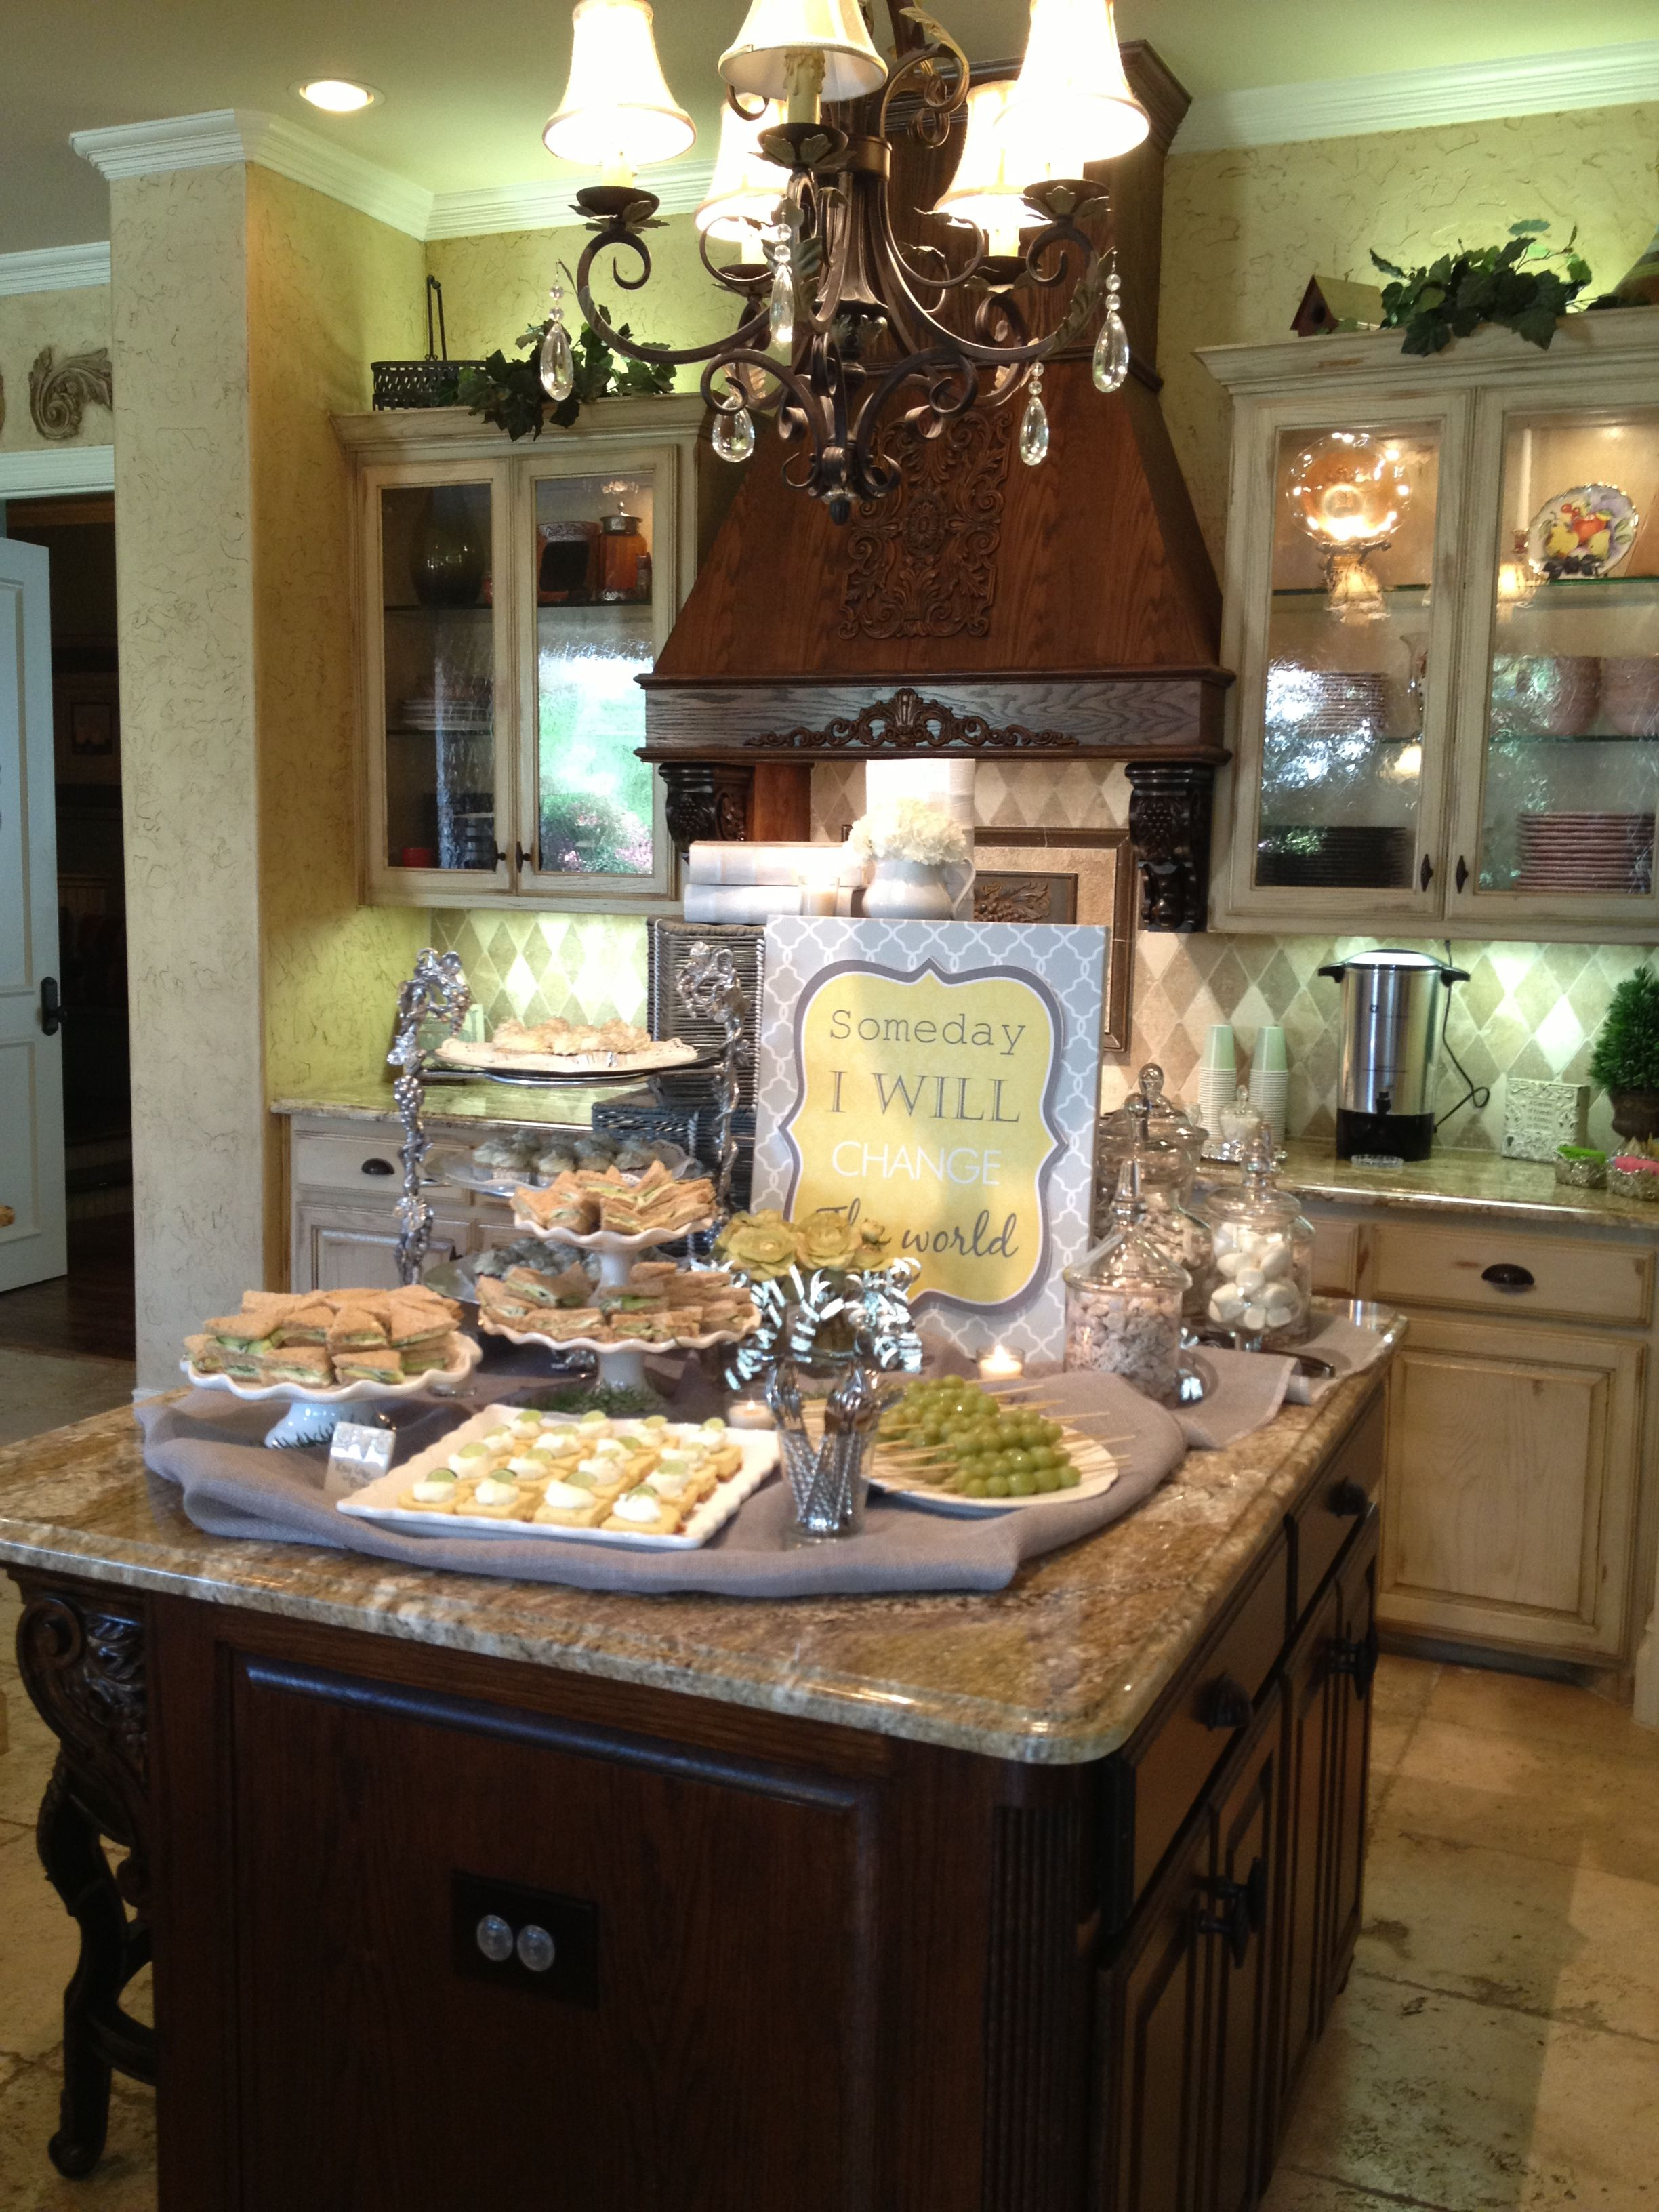 Kitchen Island Set Up For Baby Shower Feeling Special, Kitchen Islands,  Entertaining, Dishes